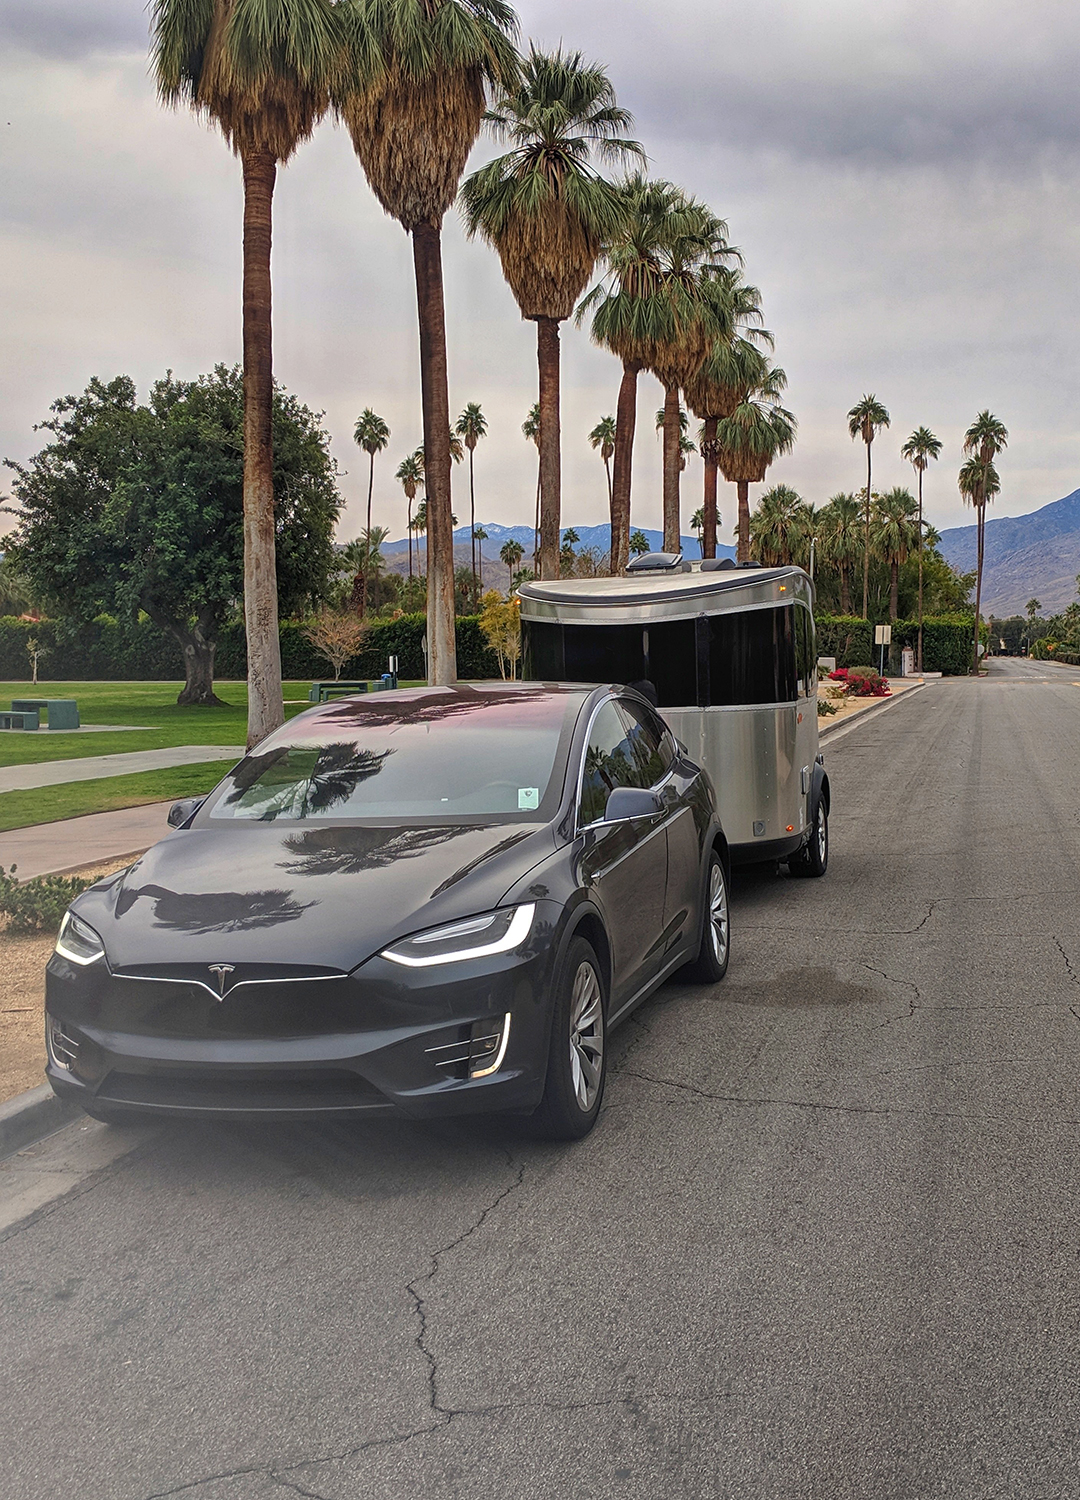 Airstream-Basecamp-and-Tesla-Model-X-on-Road